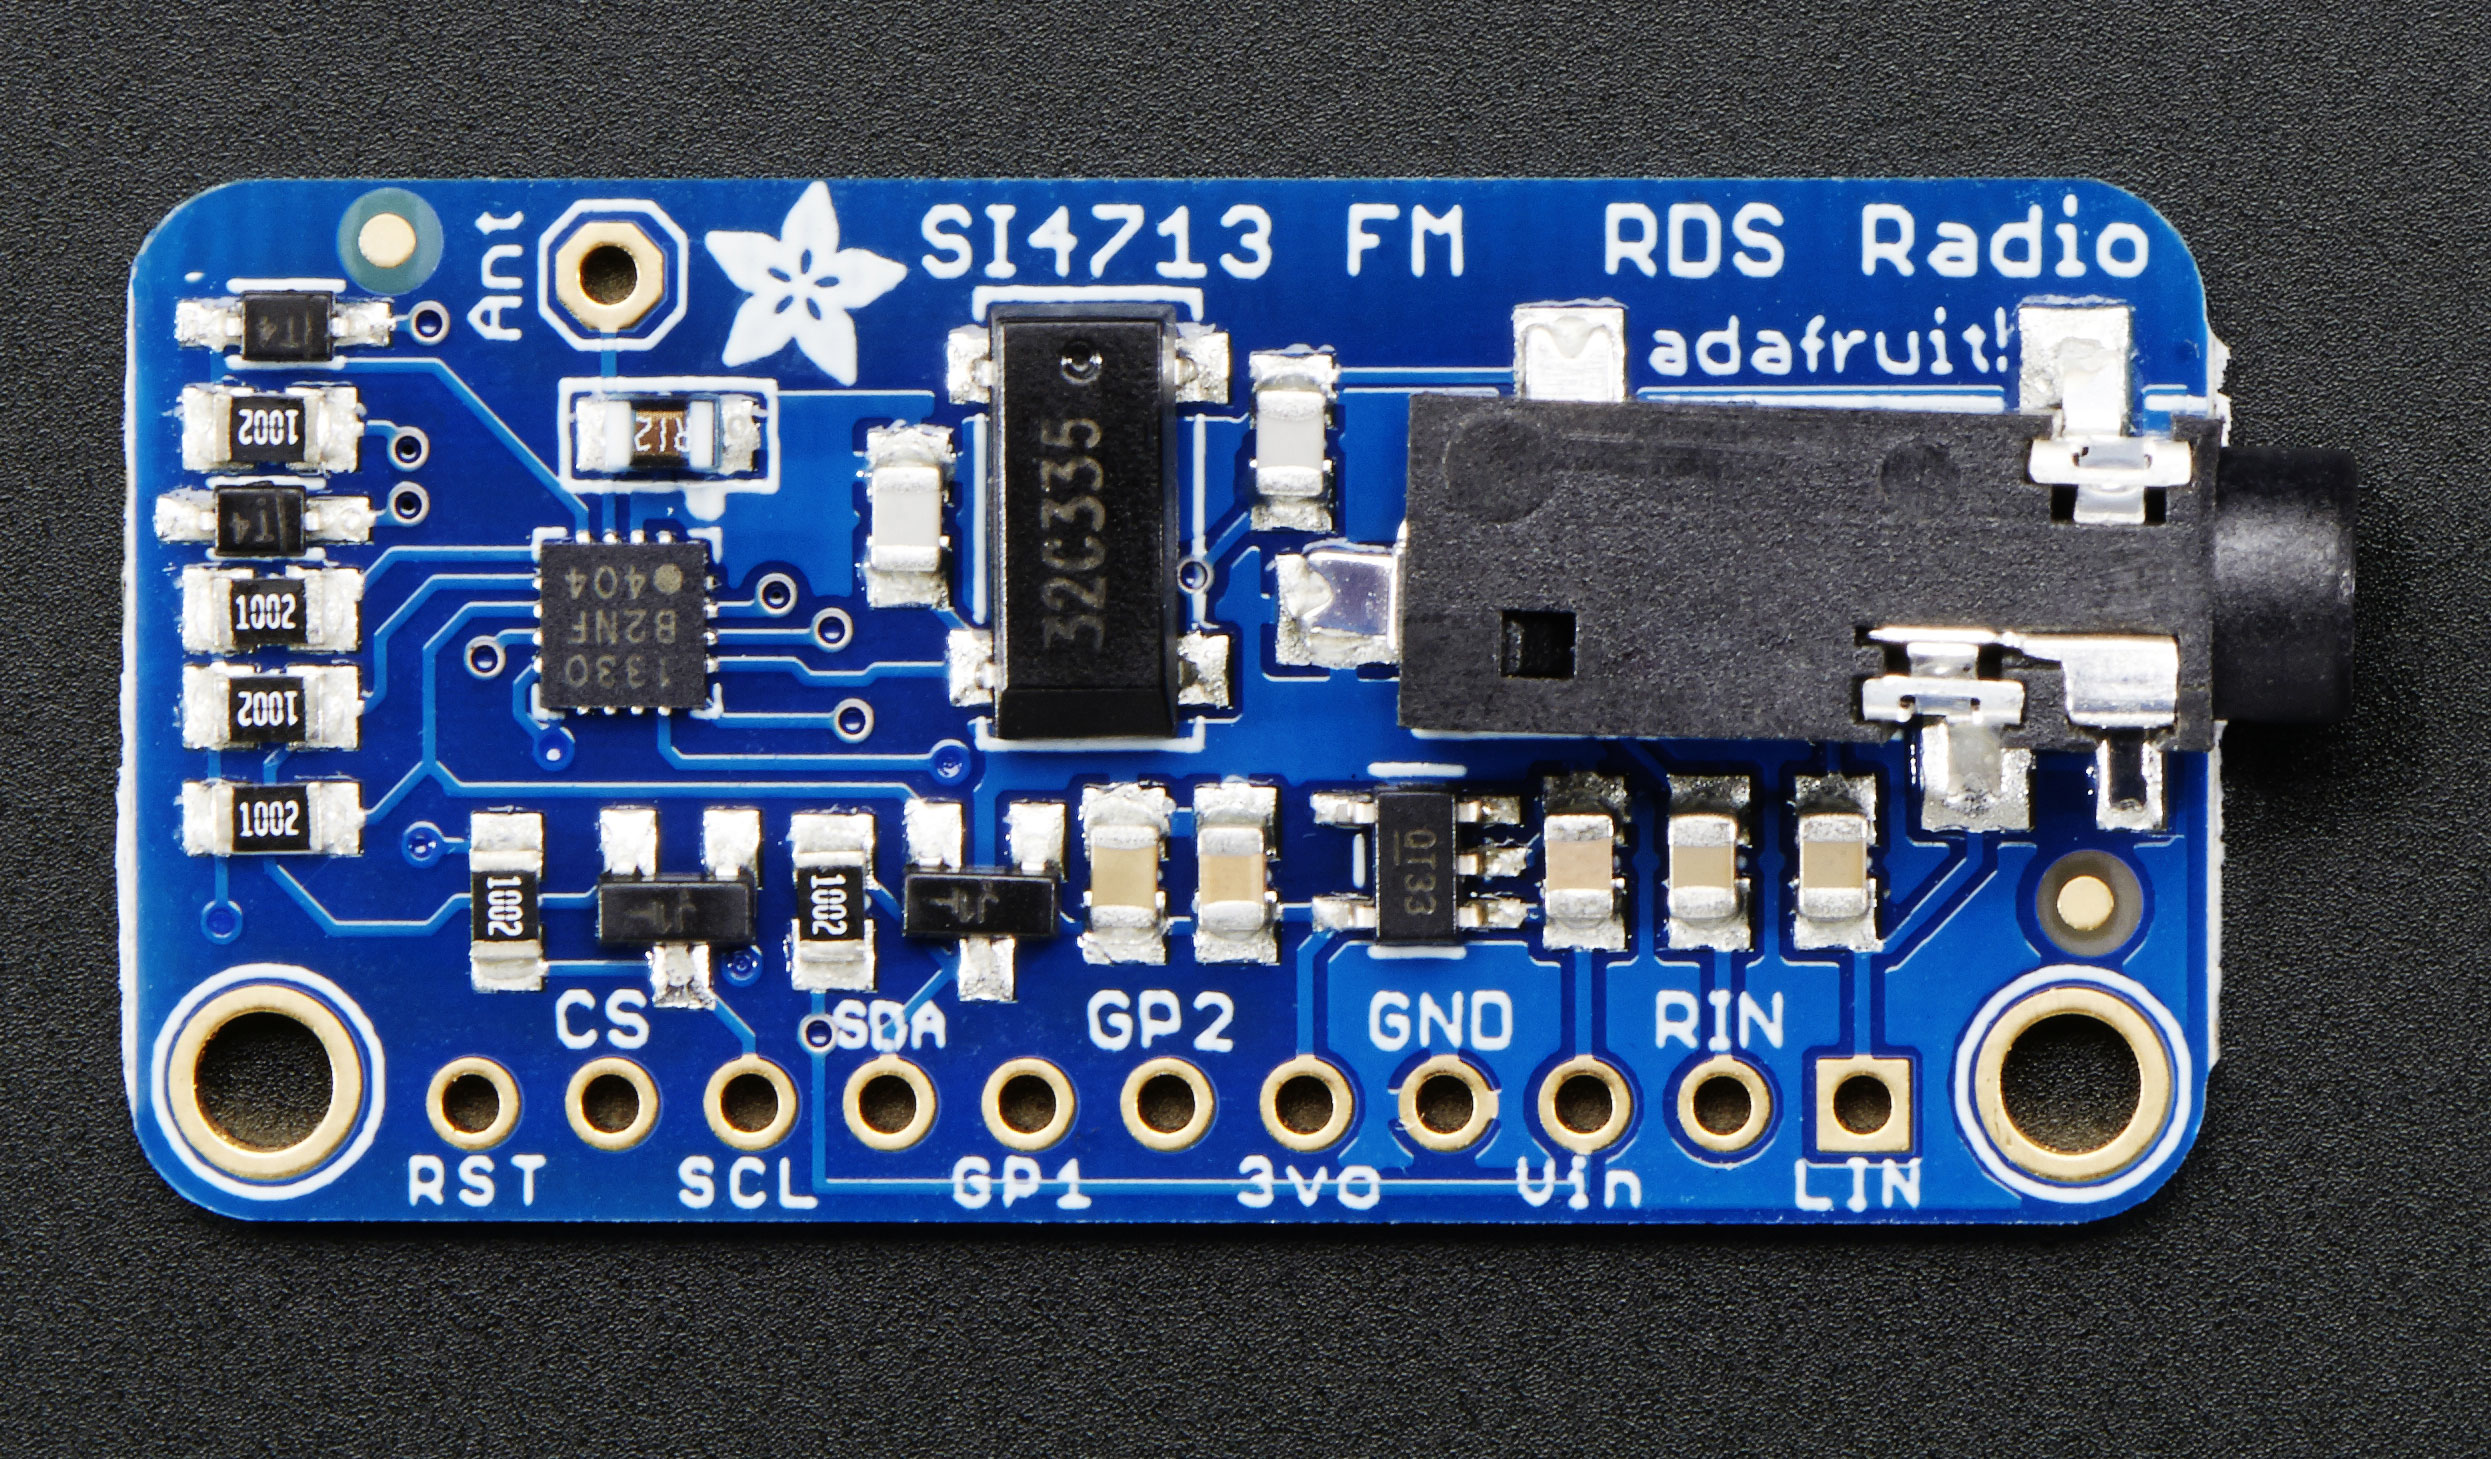 adafruit_products_board.jpg